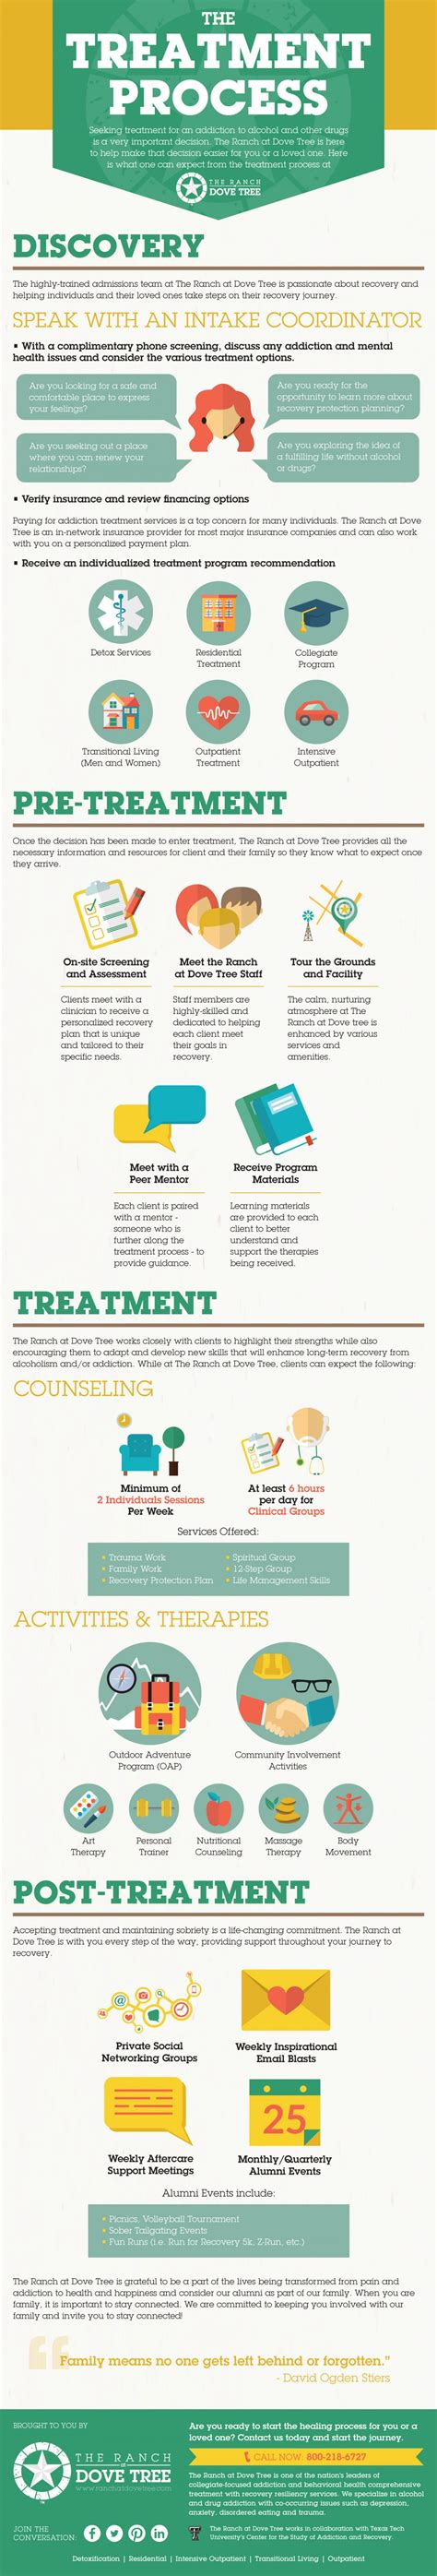 Addiction Detox Process by The Addiction Treatment Process Visual Ly